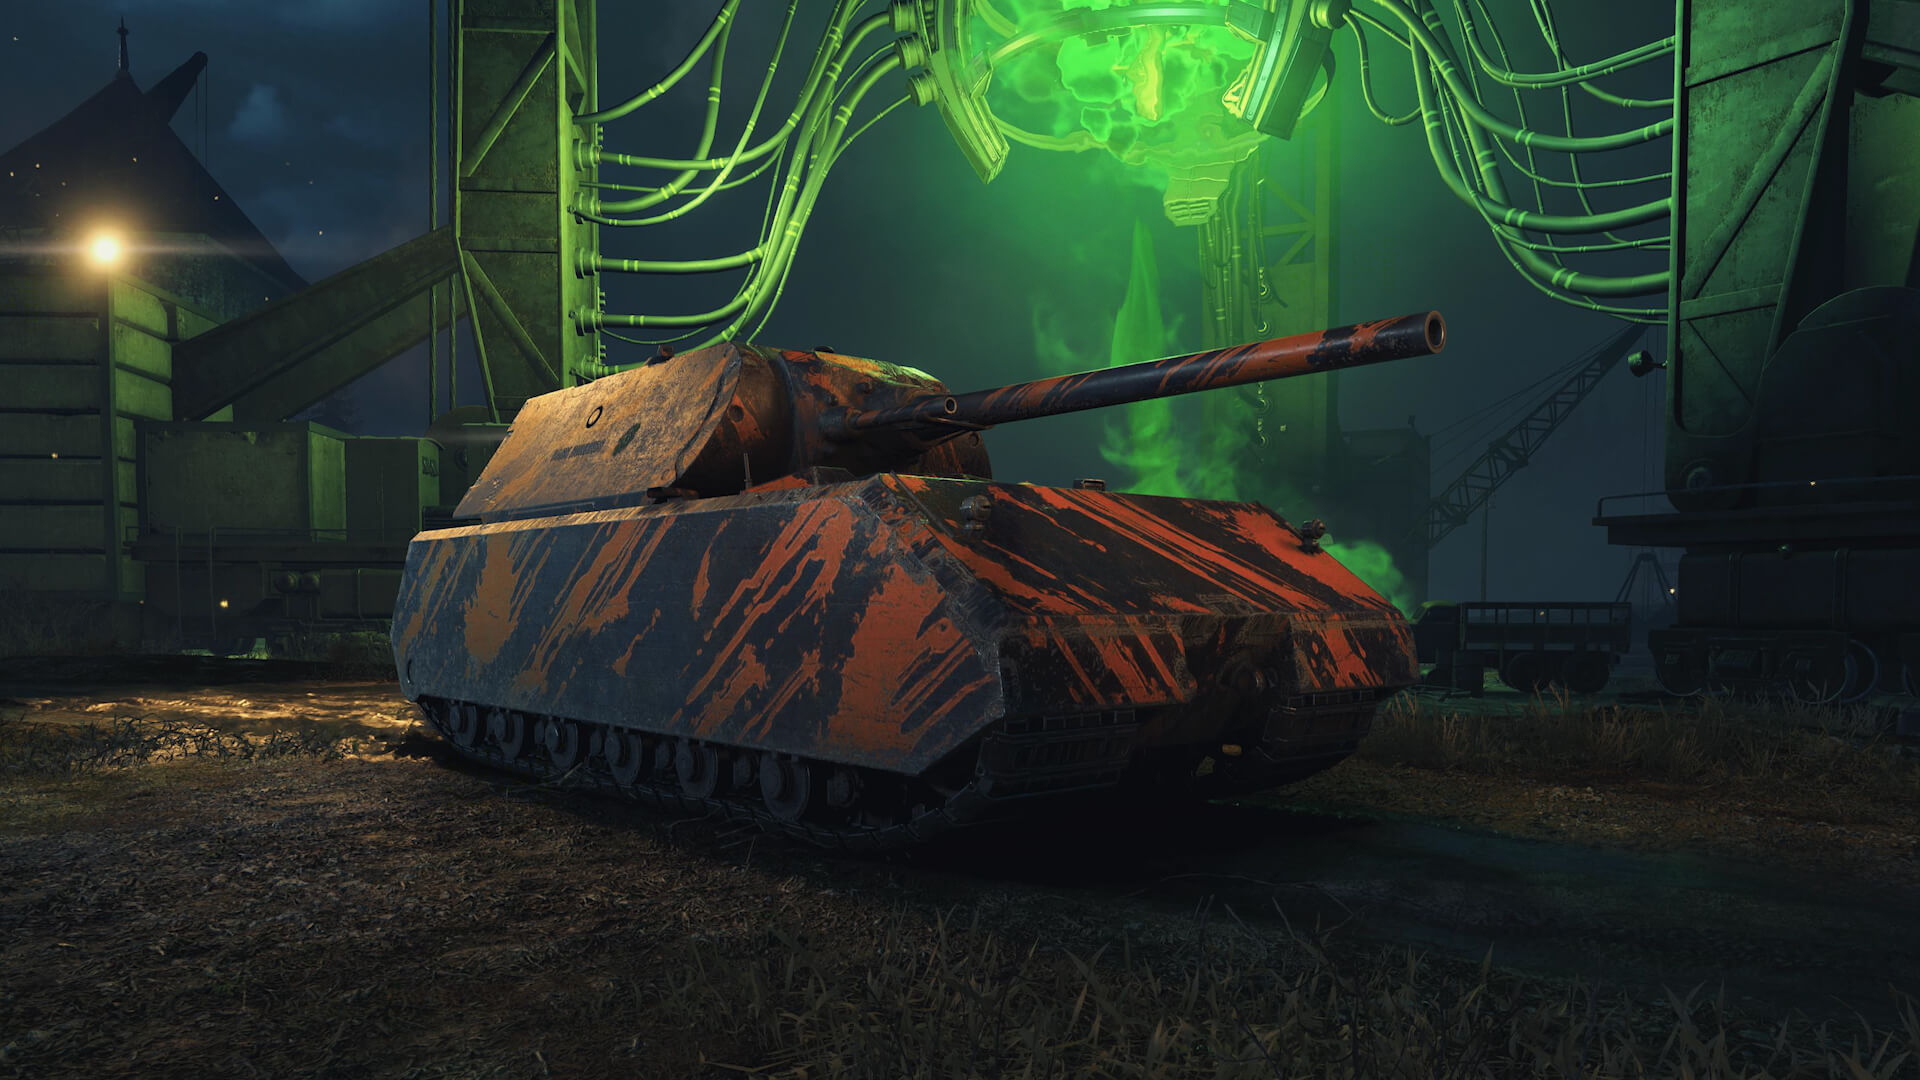 Wot Halloween 2020 Enter the Dark Front this Halloween! | General News | World of Tanks